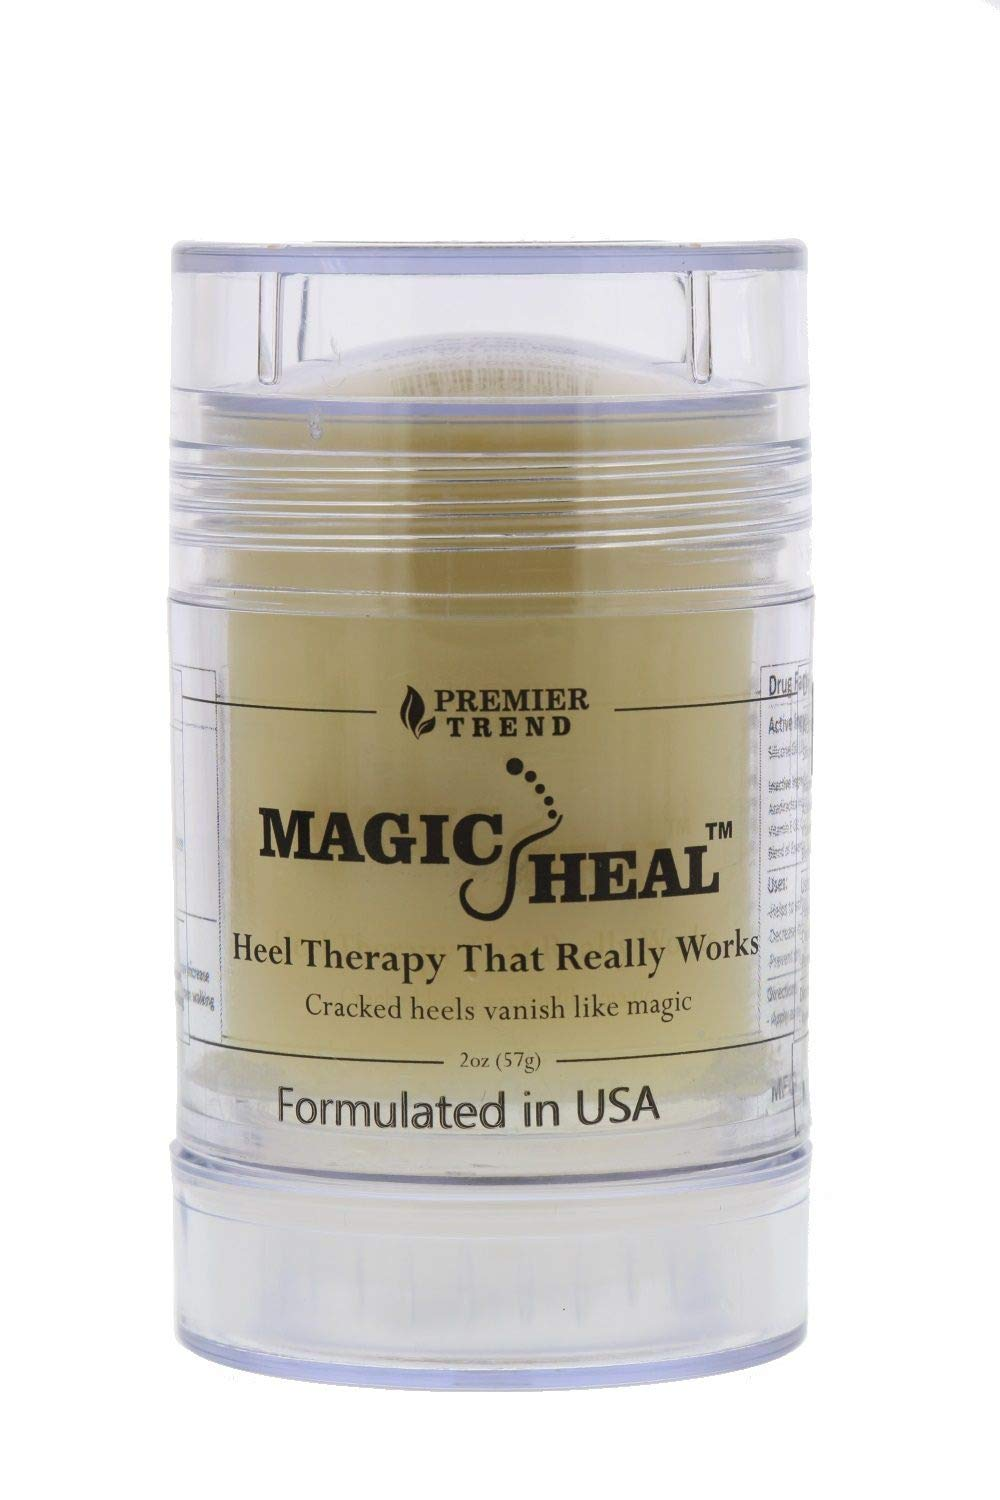 Magic Heal Cracked Heel Treatment for Cracked Heels, 2 Ounce-Intensive Foot Repair Therapy Cream with Natural Ingredients to Soothe & Moisturize Painful Dry Skin-Fast Results, No Mess Stick Applicator